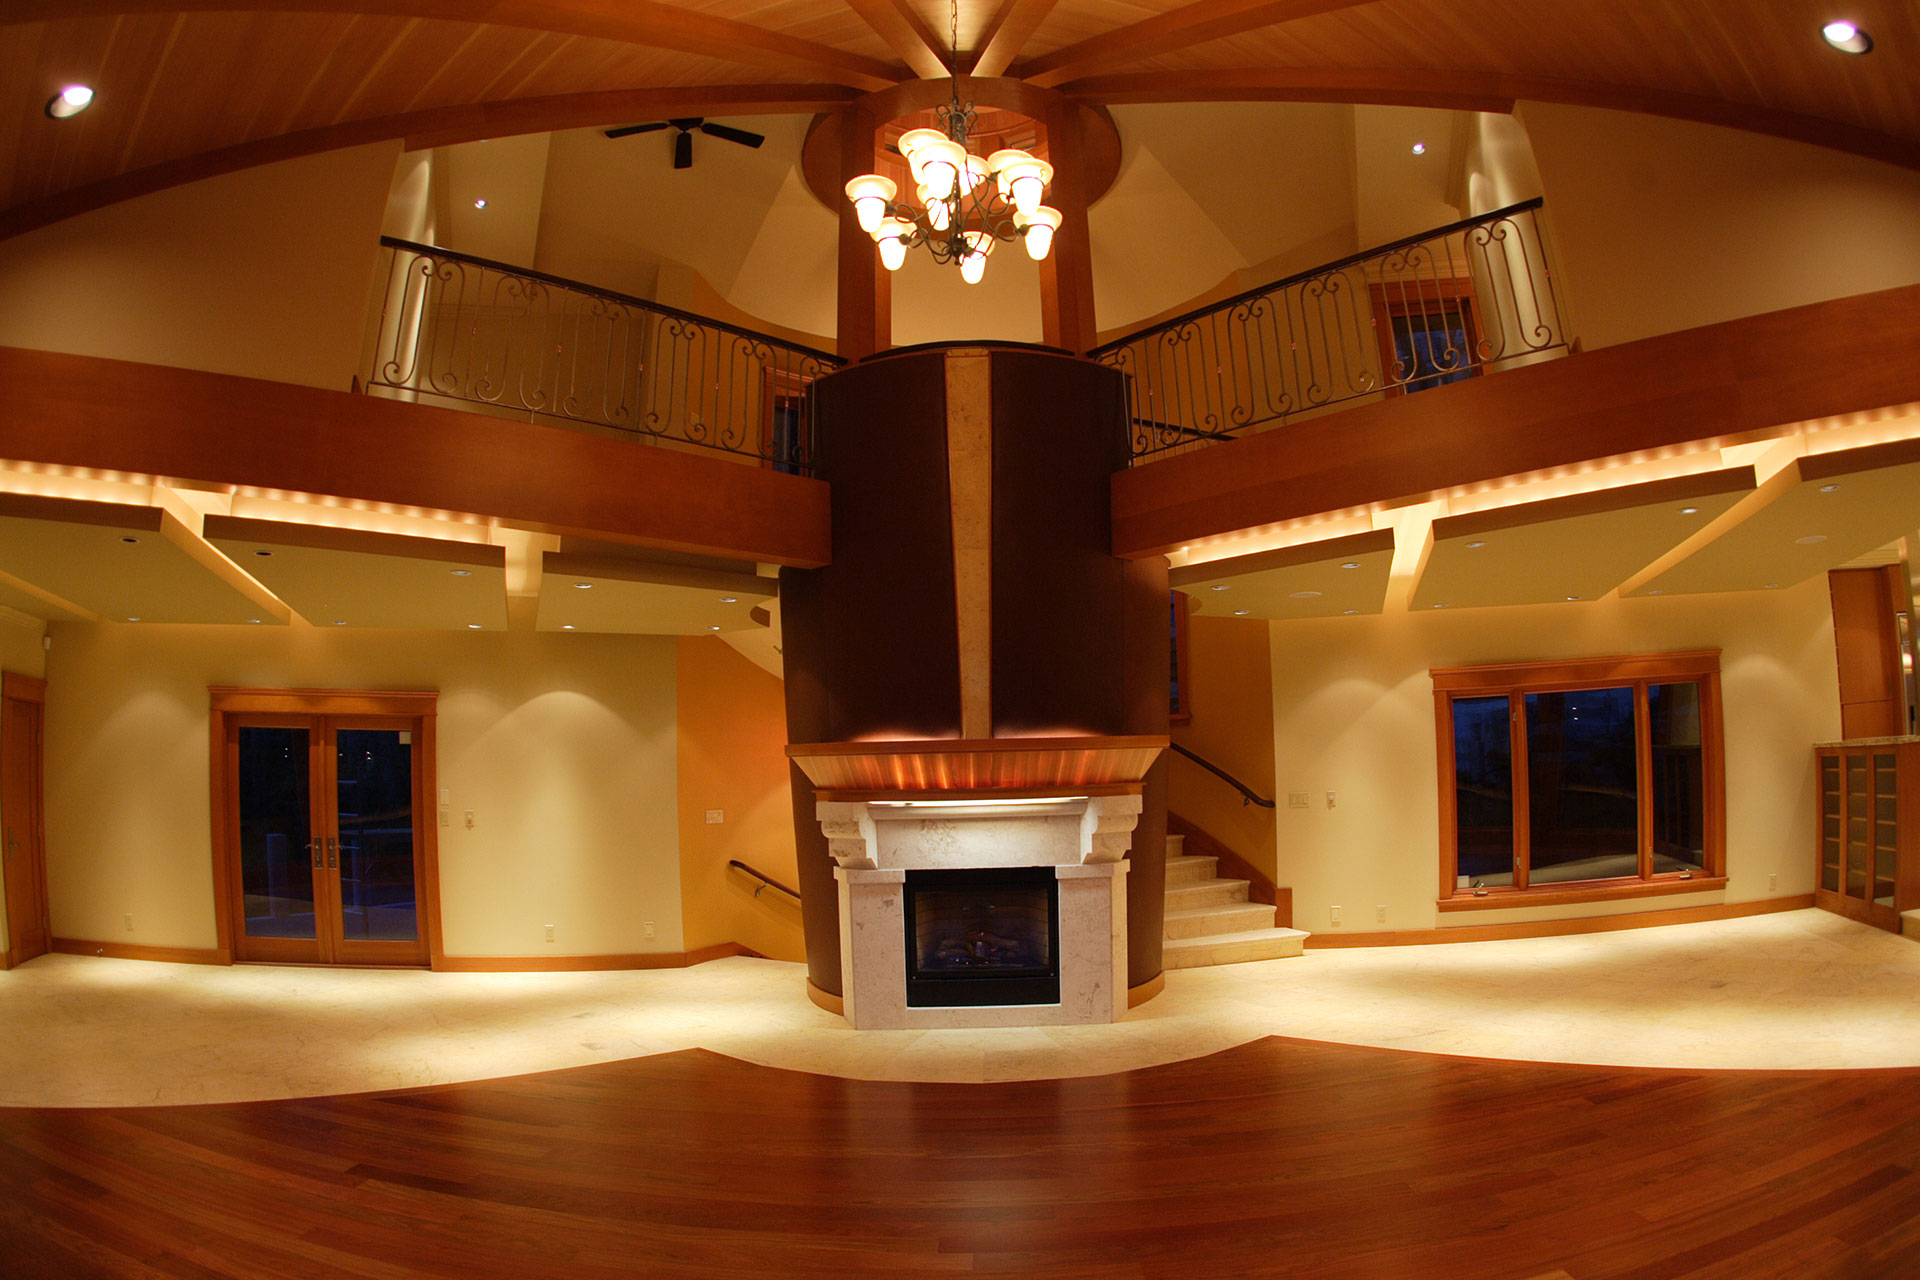 Interior of Northwood home